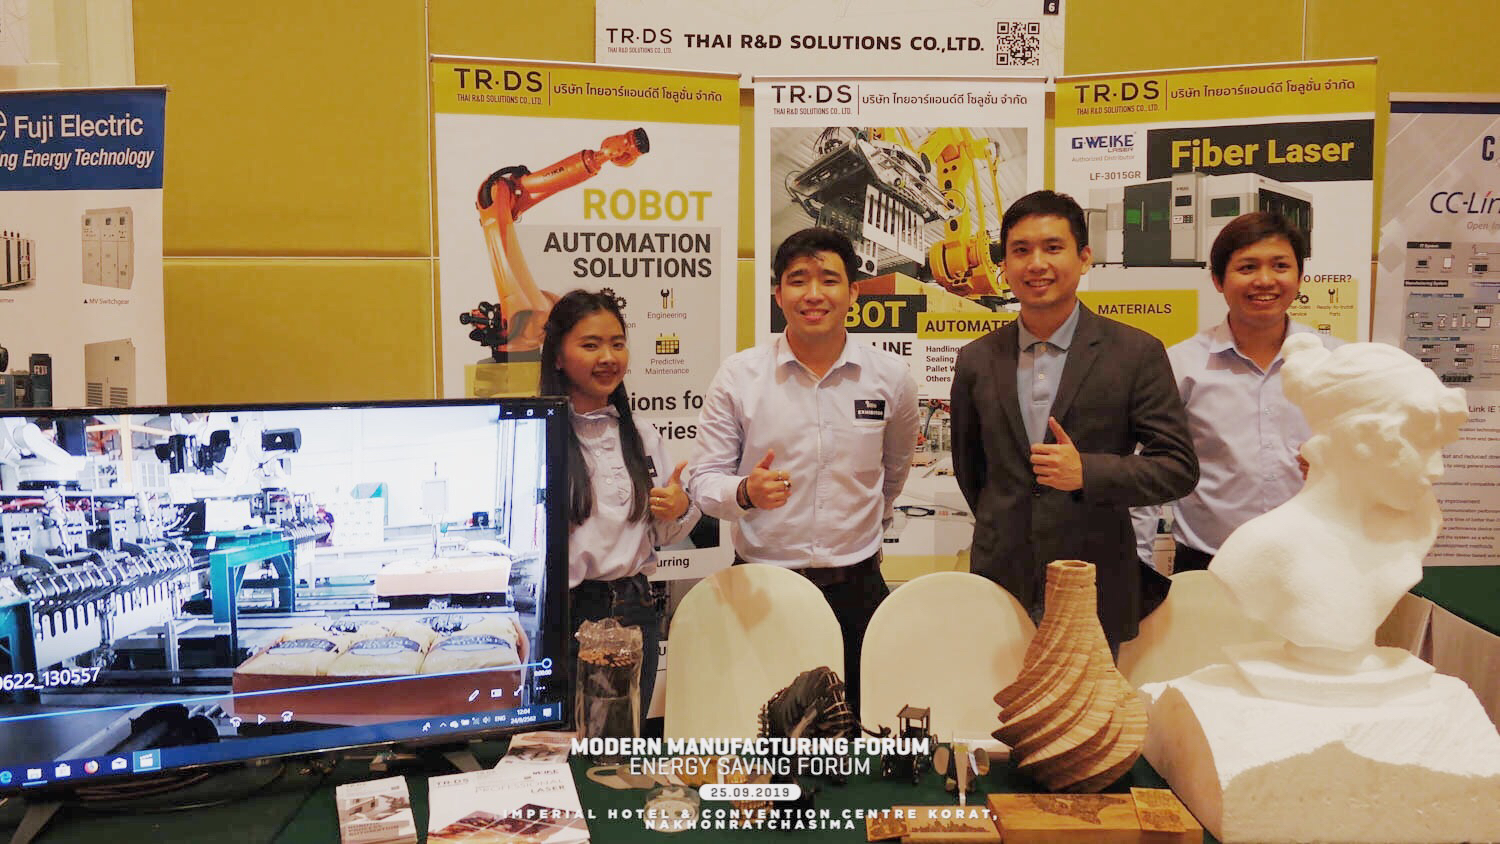 Thai R&D Solutions @Thailand Industrial Forum 2019 (Korat)